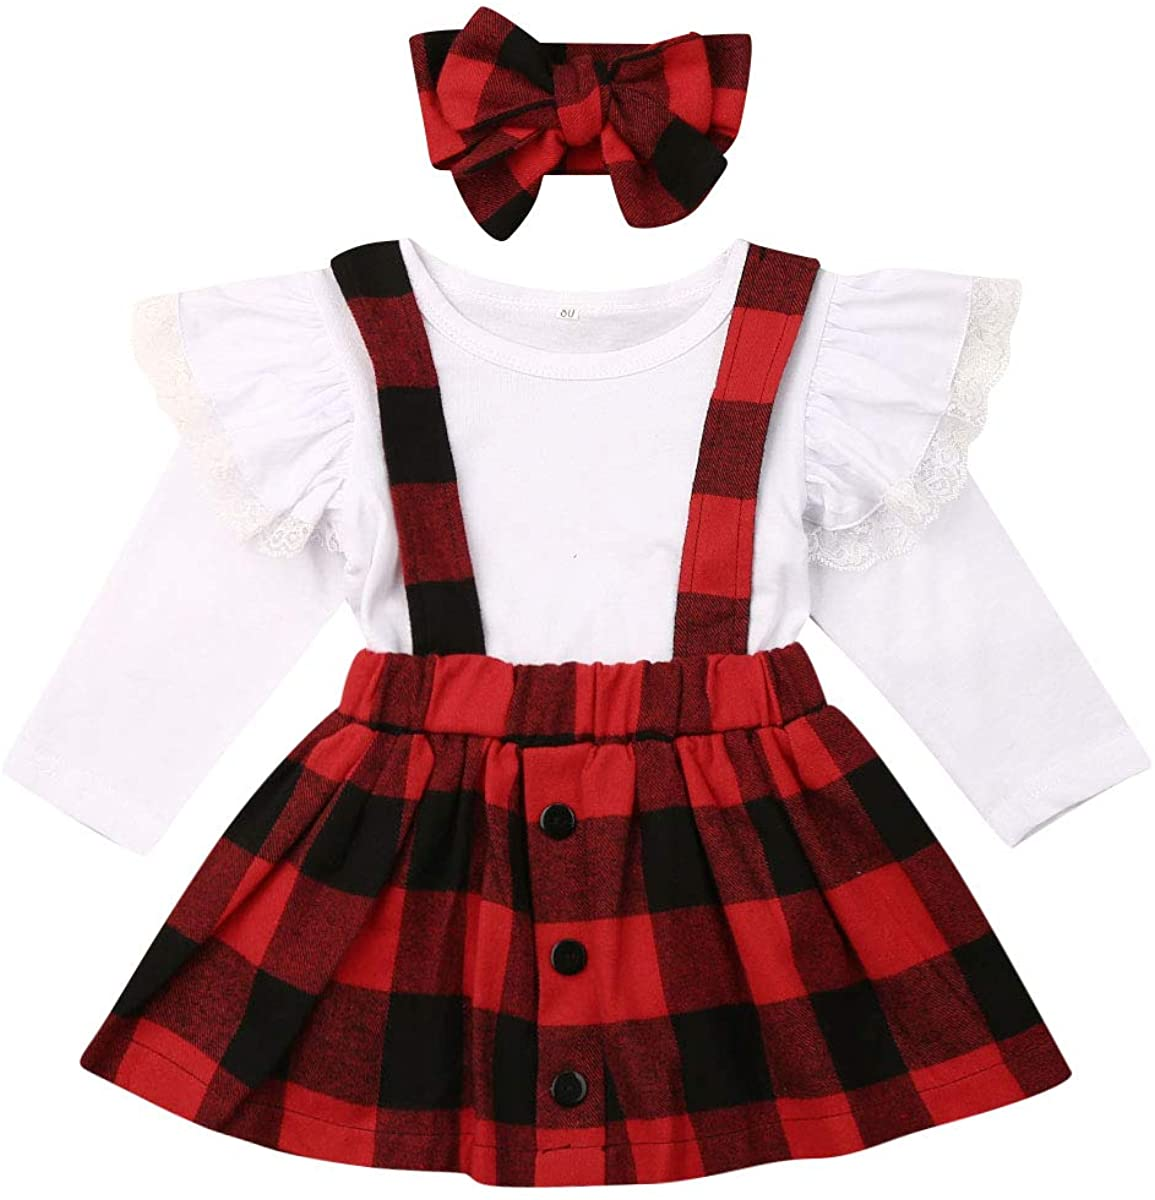 Fall Winter Clohtes Toddler Baby Girl Romper T-Shirt Tops+Suspender Skirt Overall Clothes Set Plaid Outfits Set